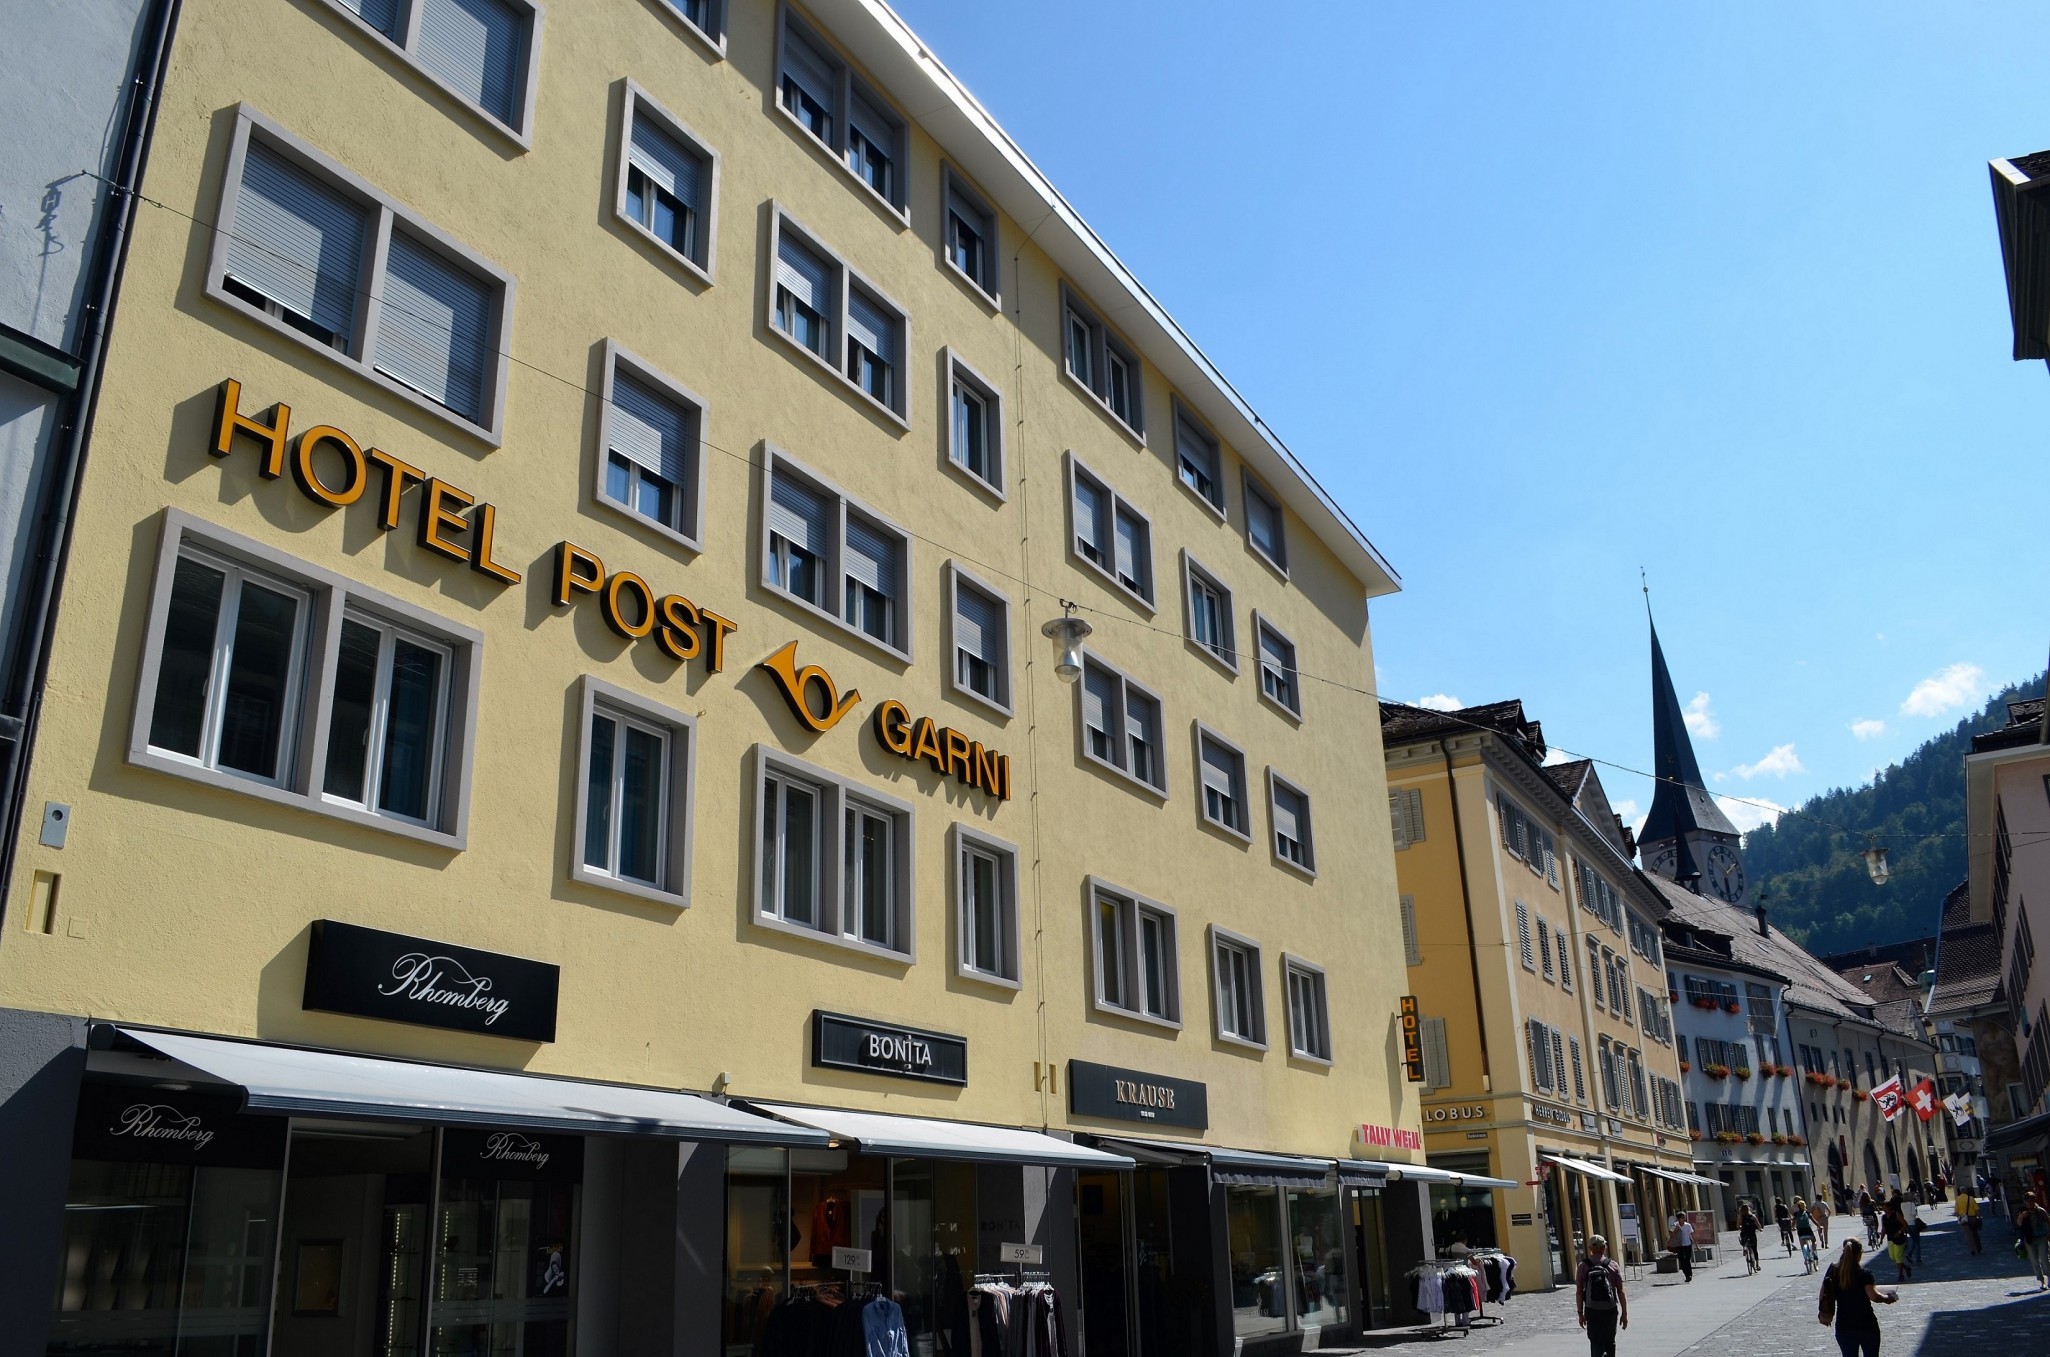 Central Hotel Post in Chur, Schweiz - Hotel Post Chur